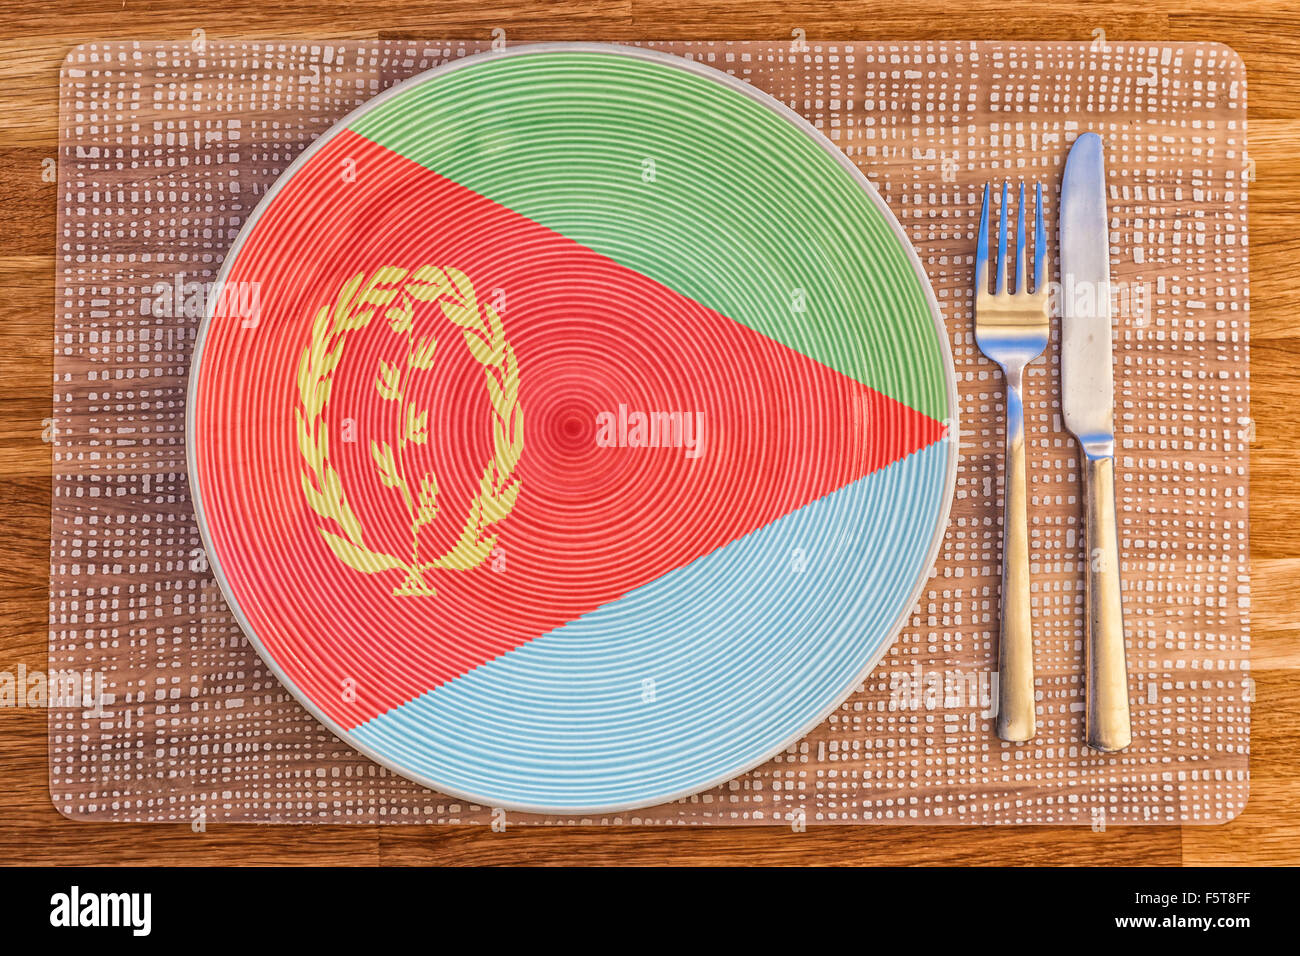 Dinner plate with the flag of Eritrea on it for your international food and drink concepts. - Stock Image